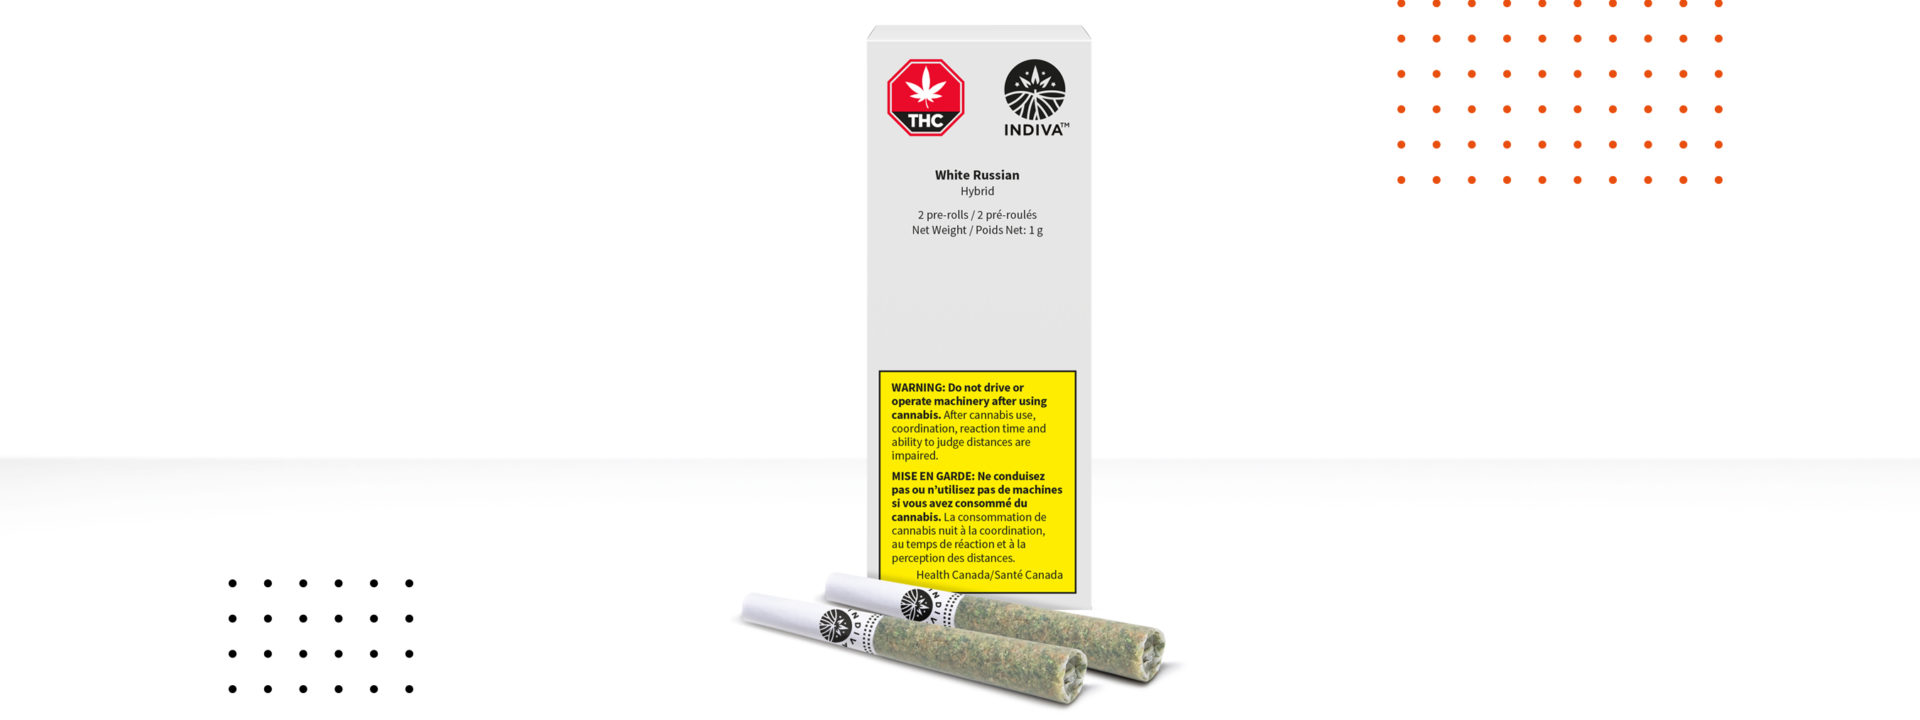 Introducing the Newest Cannabis Strain from Indiva – The Famous White Russian